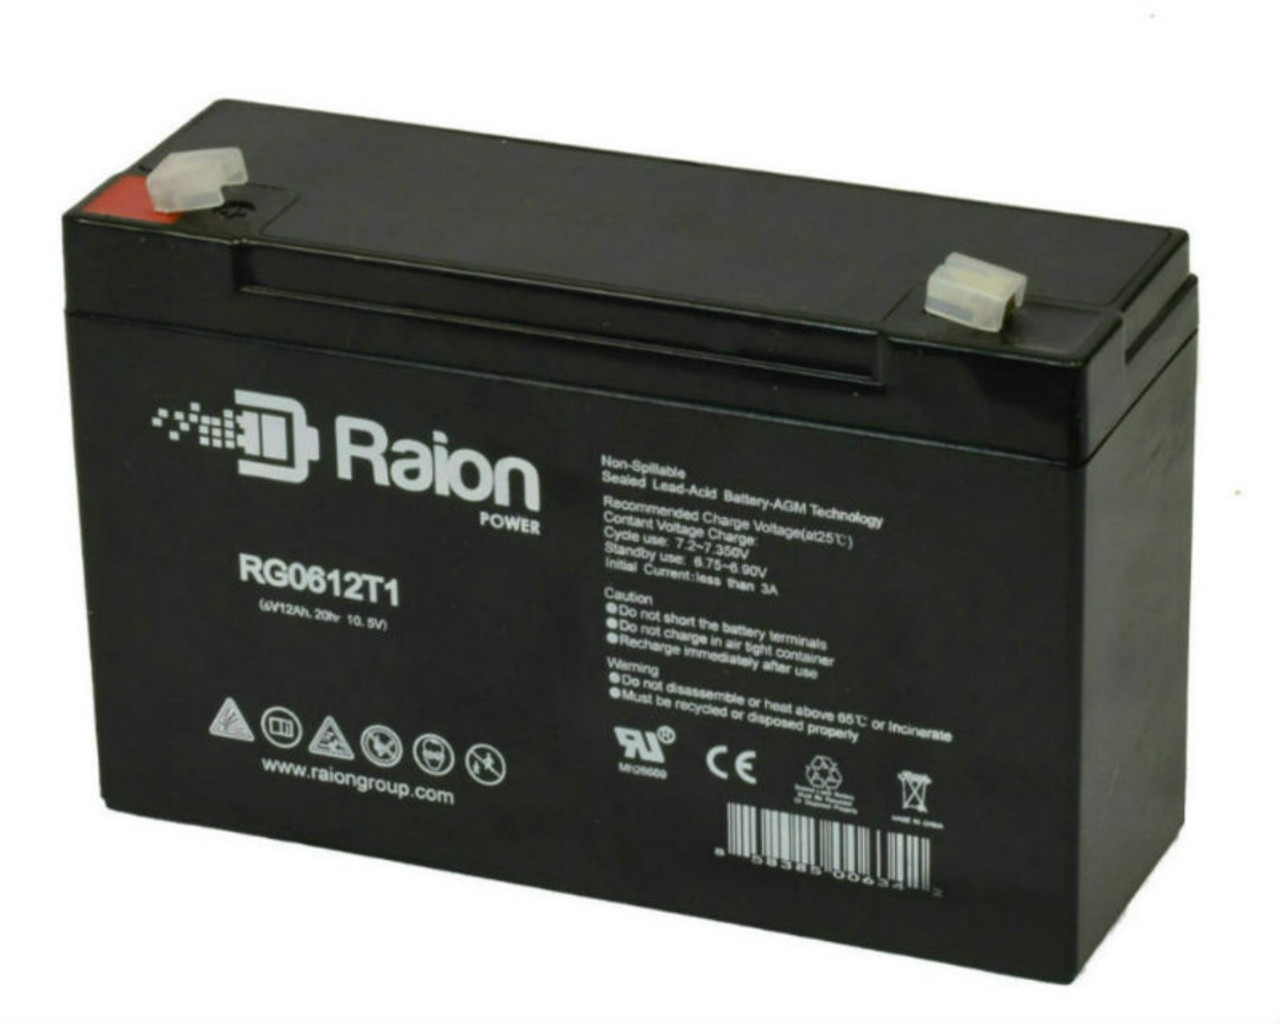 Raion Power RG06120T1 Replacement Battery Pack for Teledyne 2RQ6S16 emergency light